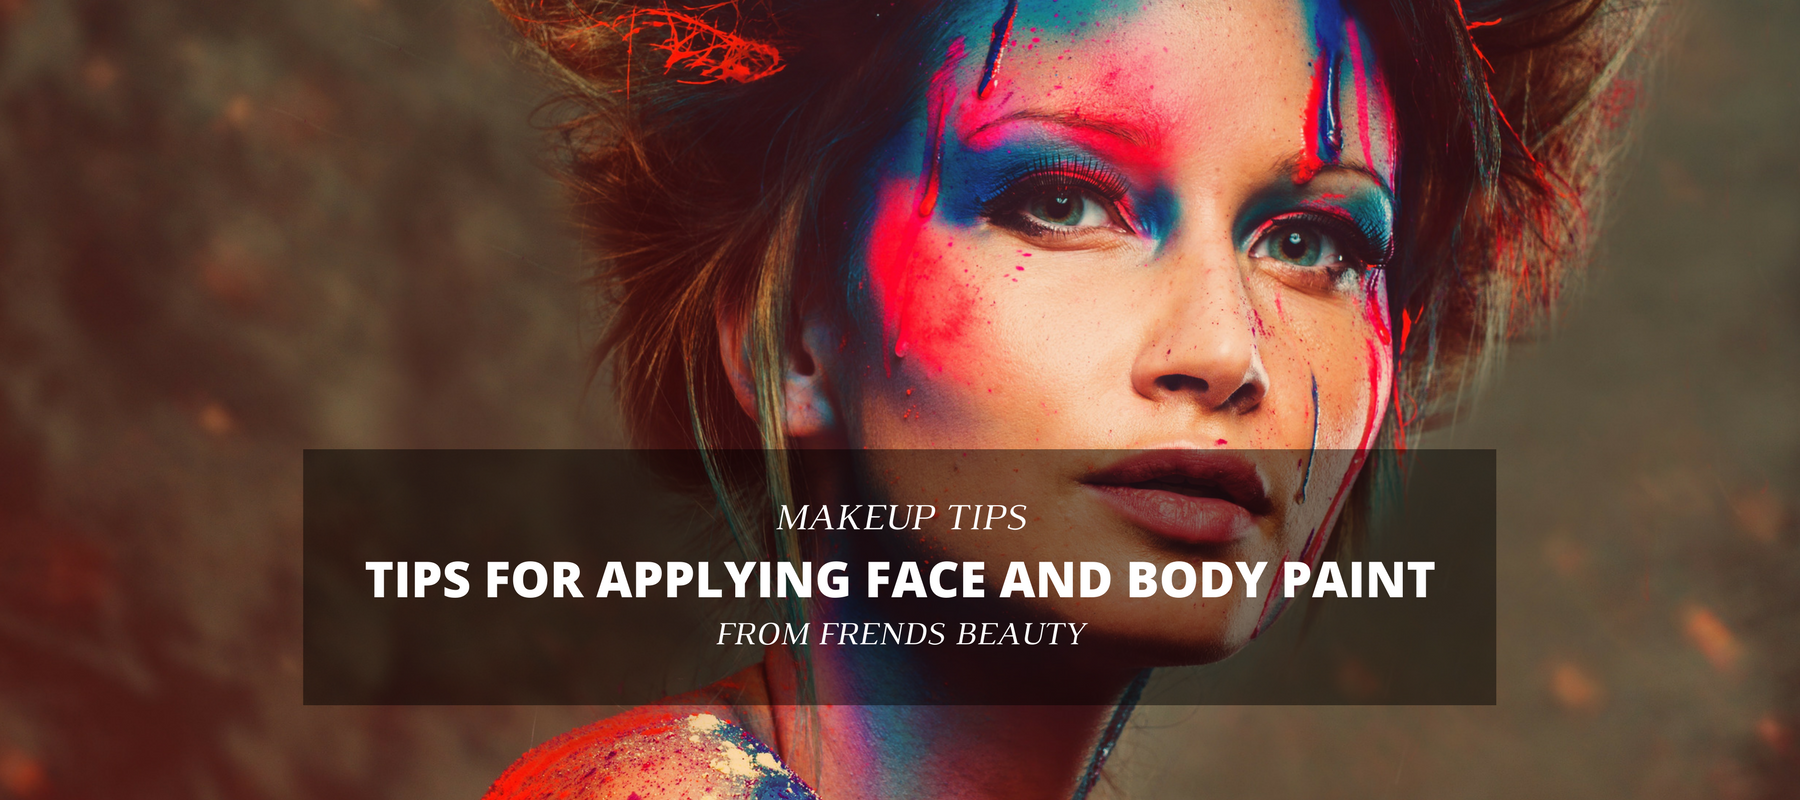 Body Art Makeup Tips Saubhaya Makeup